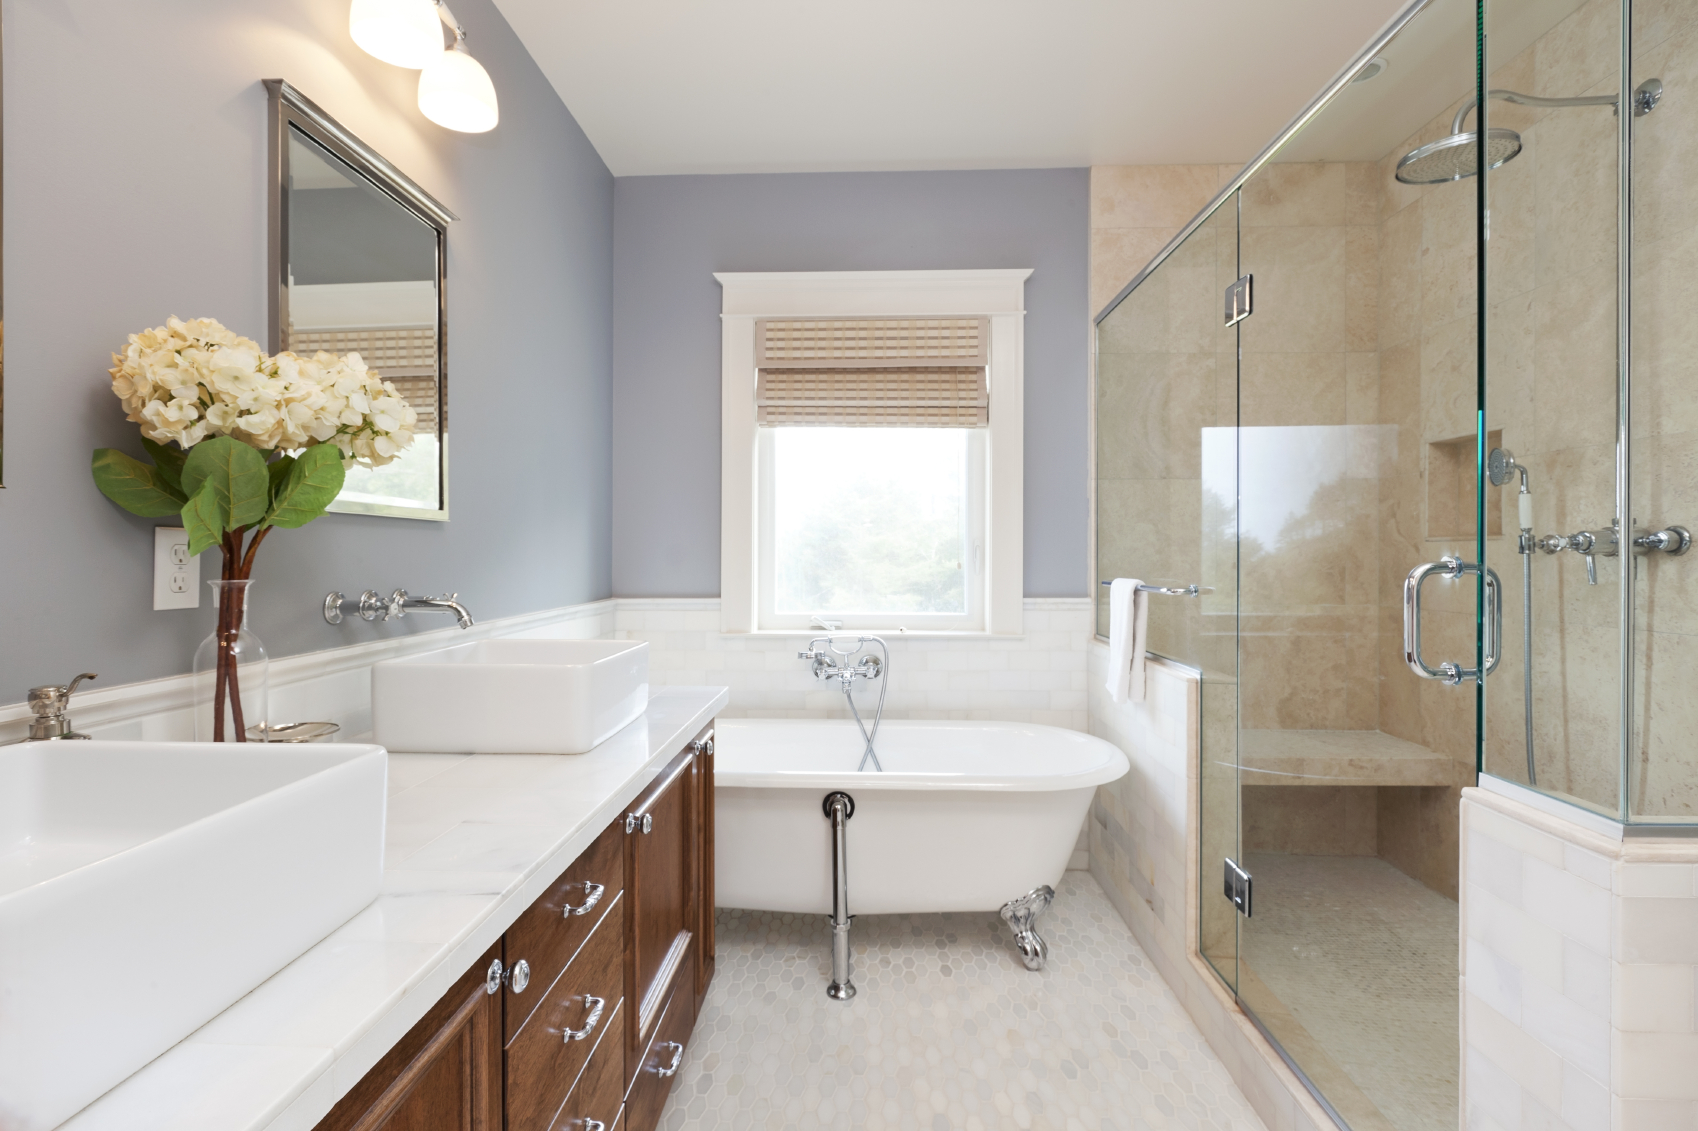 bathroom renovation facts suitable with bathroom renovation for wheelchair access